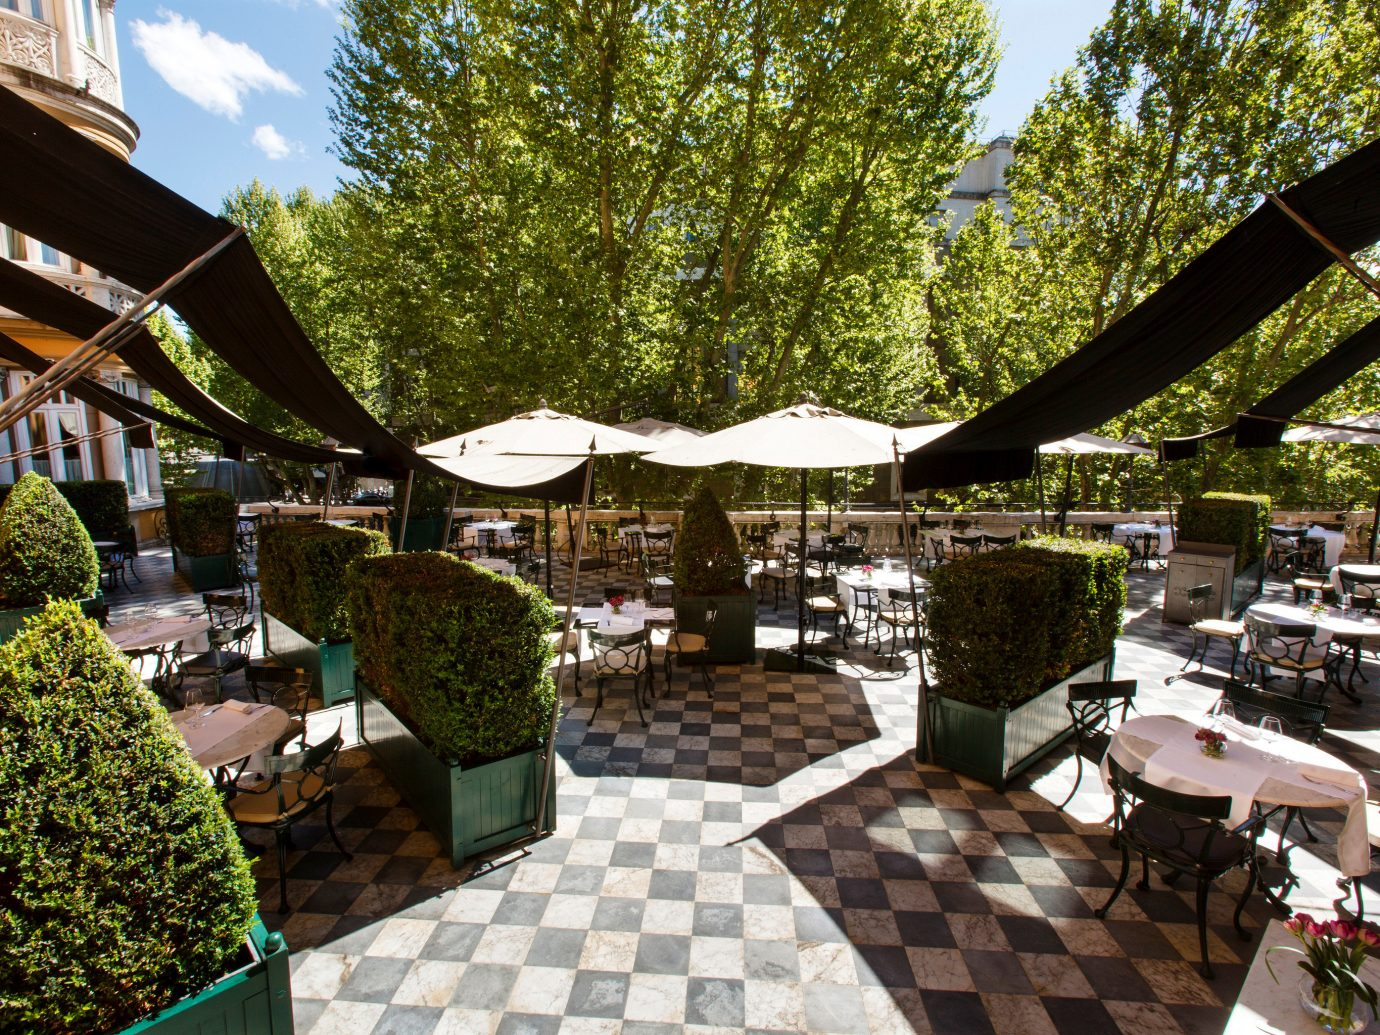 Boutique Hotels Hotels Italy Luxury Travel Romantic Hotels Rome tree outdoor public space Resort flower restaurant outdoor structure furniture